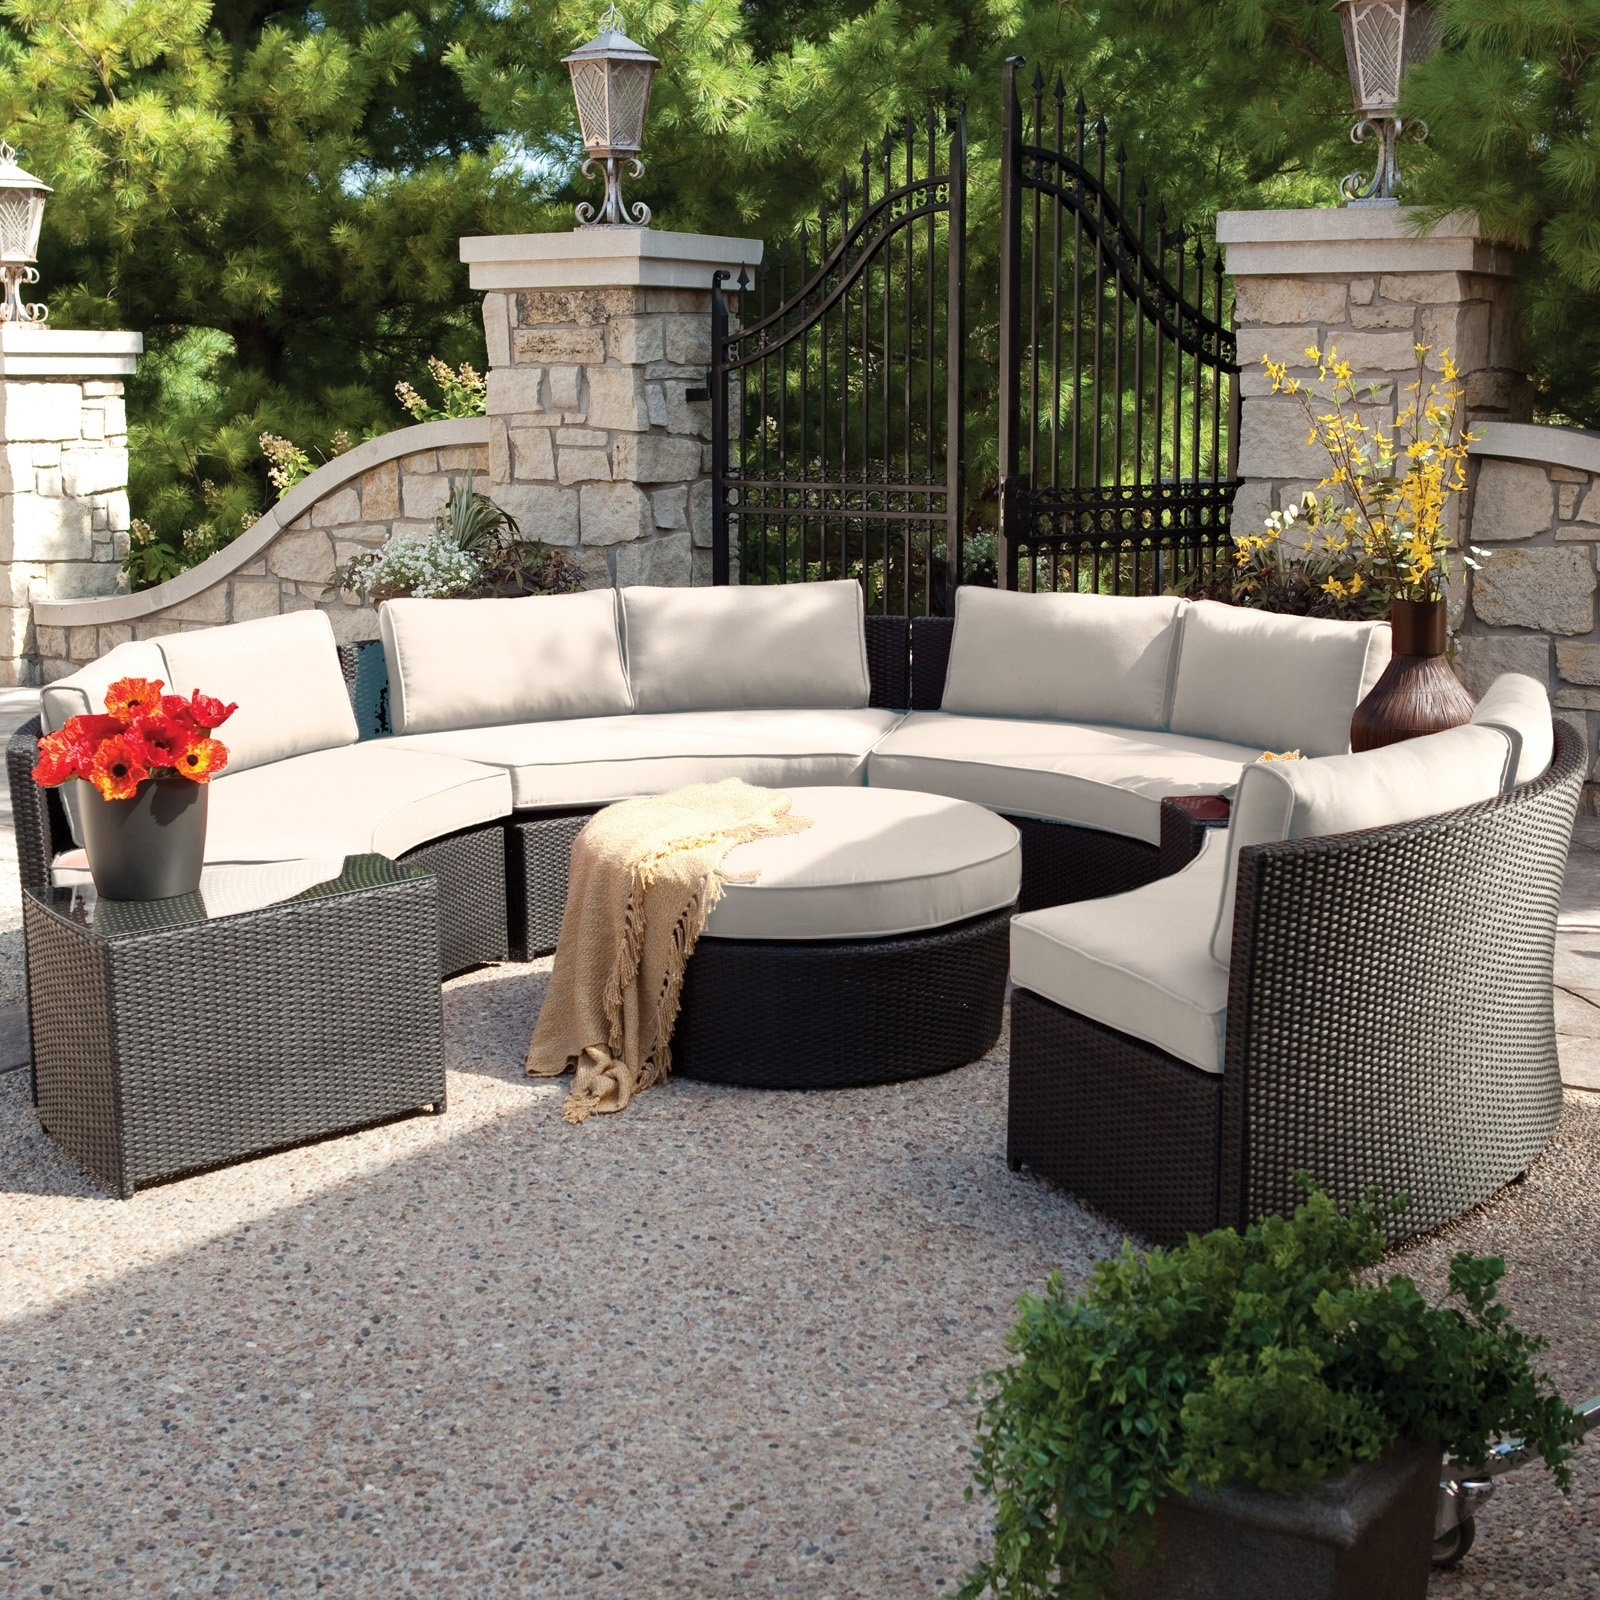 Belham Living Meridian Round Outdoor Wicker Patio Furniture Set With In Patio Sofas (View 4 of 10)